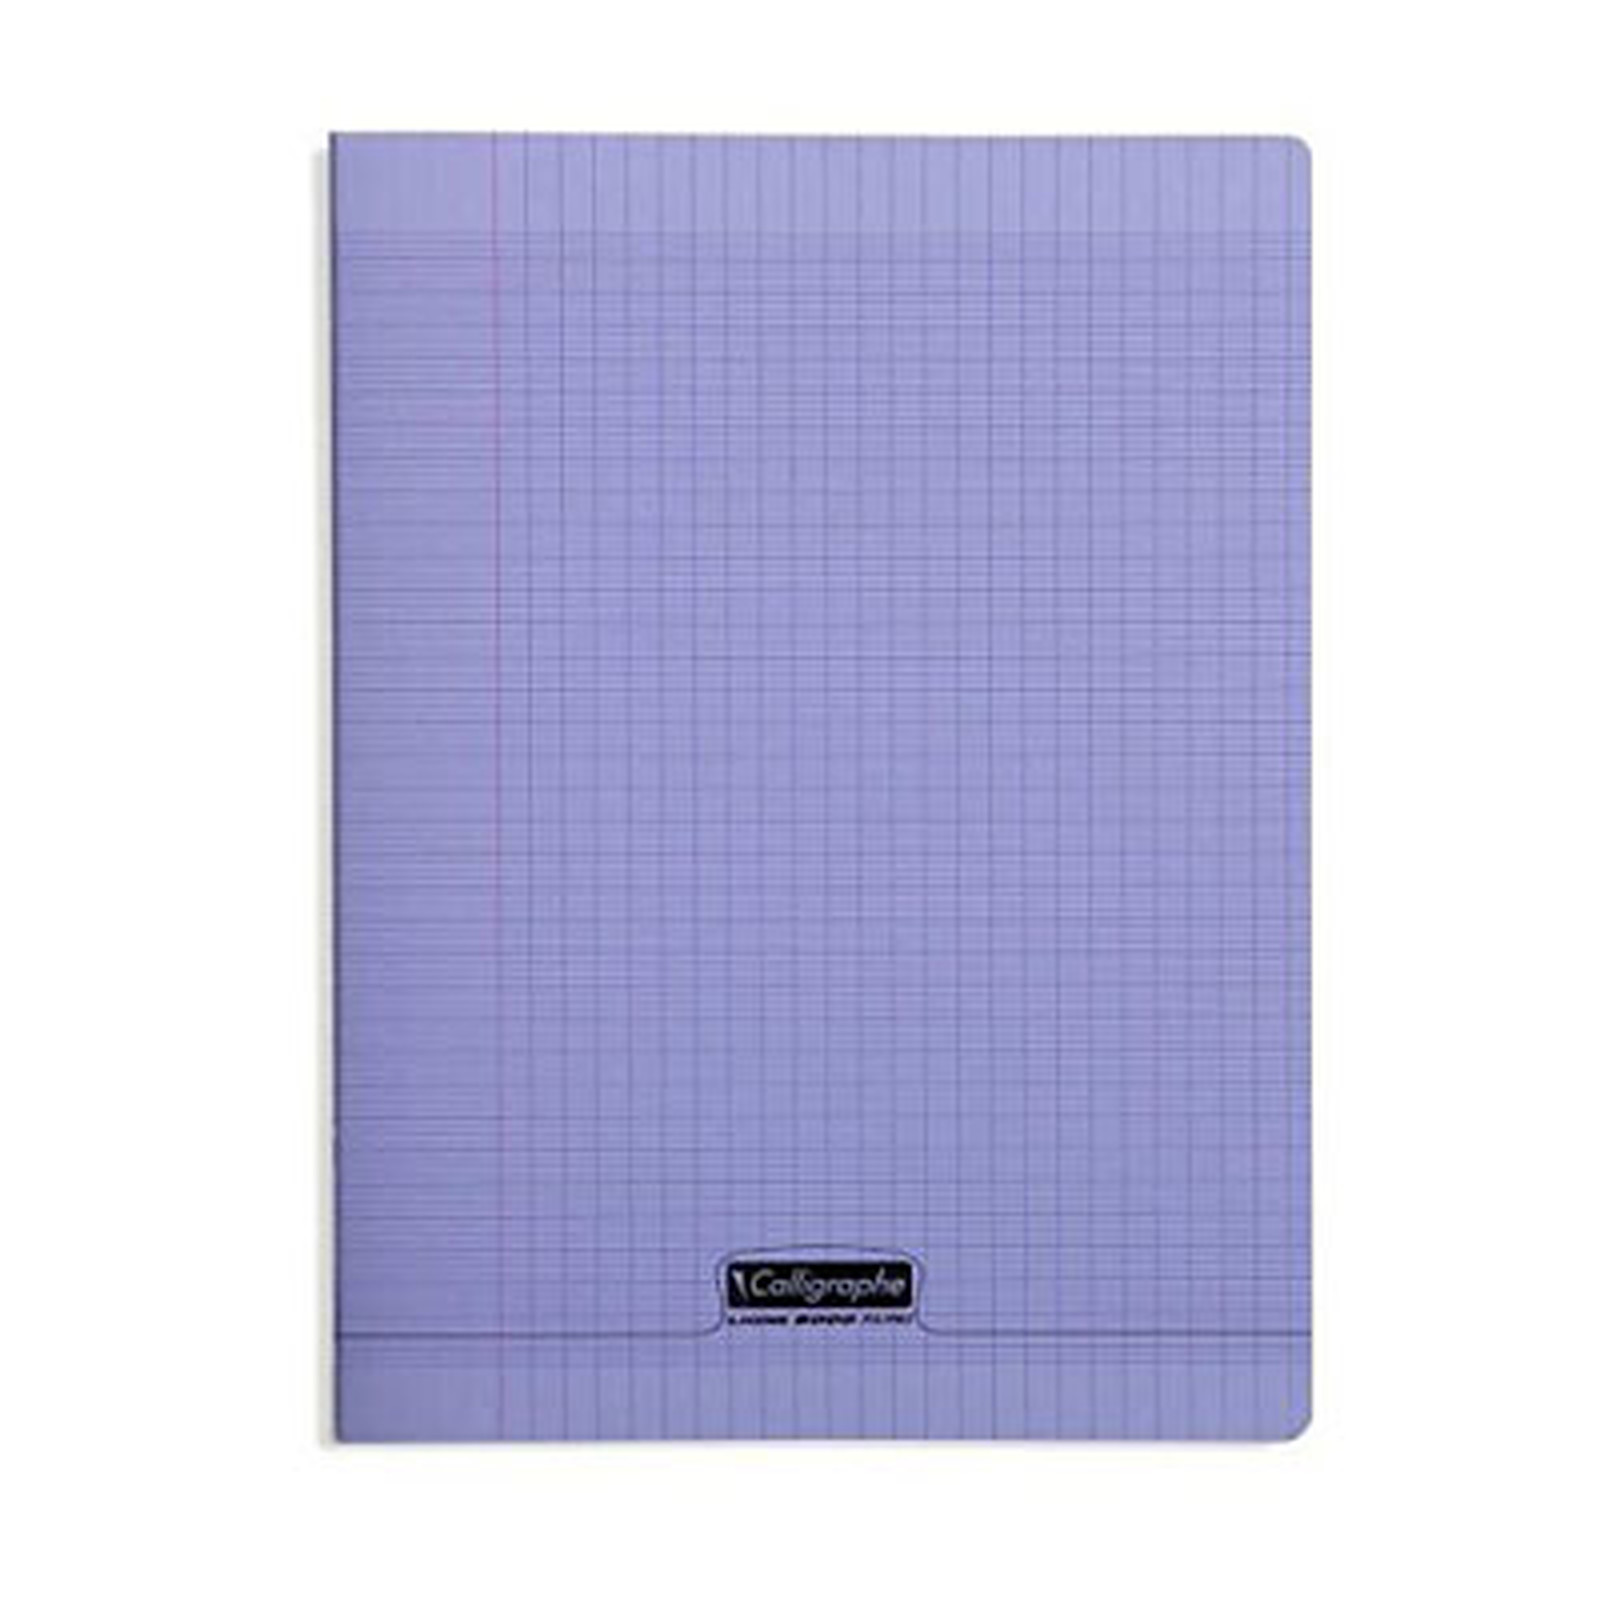 Calligraphe 8000 Polypro Cahier 96 pages 24 x 32 cm seyes grands carreaux Violet